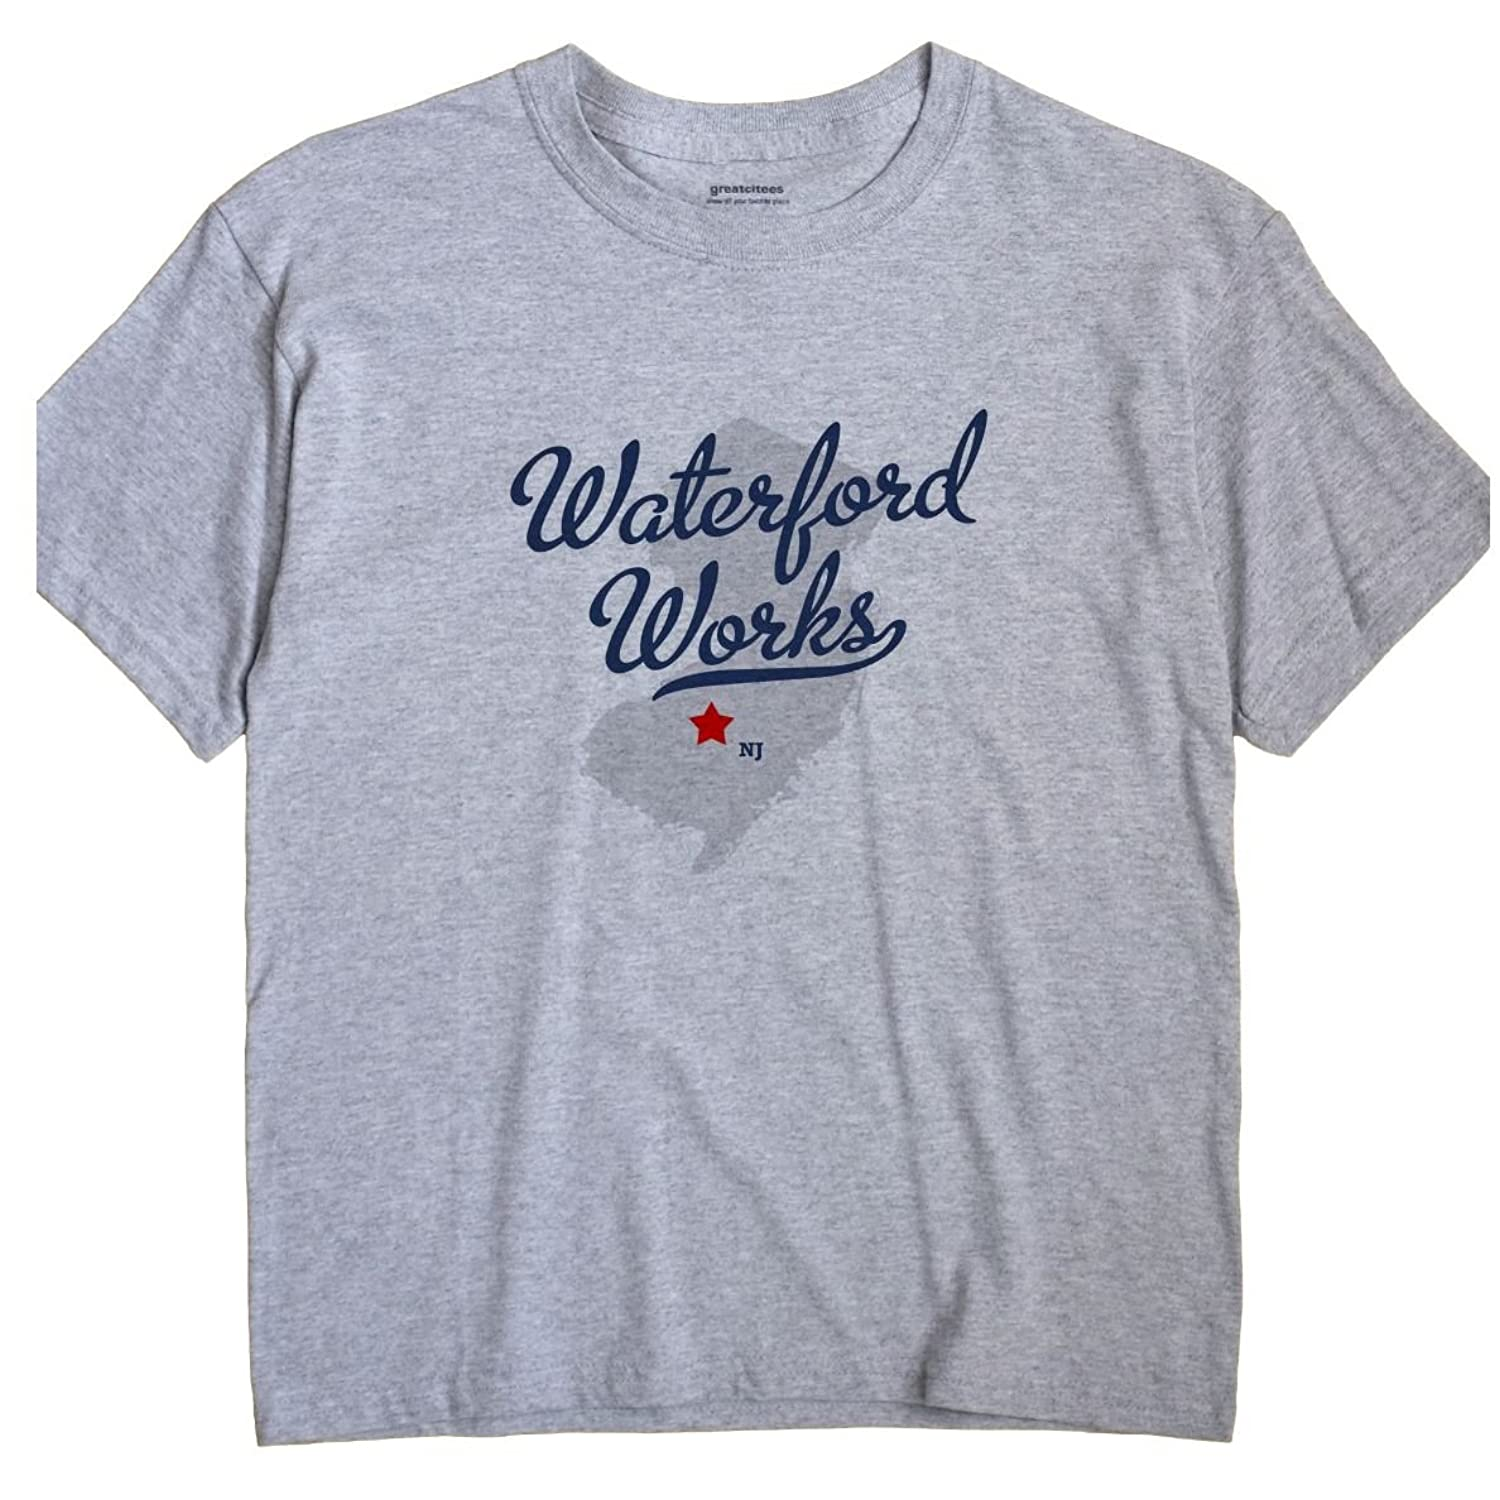 Waterford Works New Jersey NJ MAP GreatCitees Unisex Souvenir T Shirt